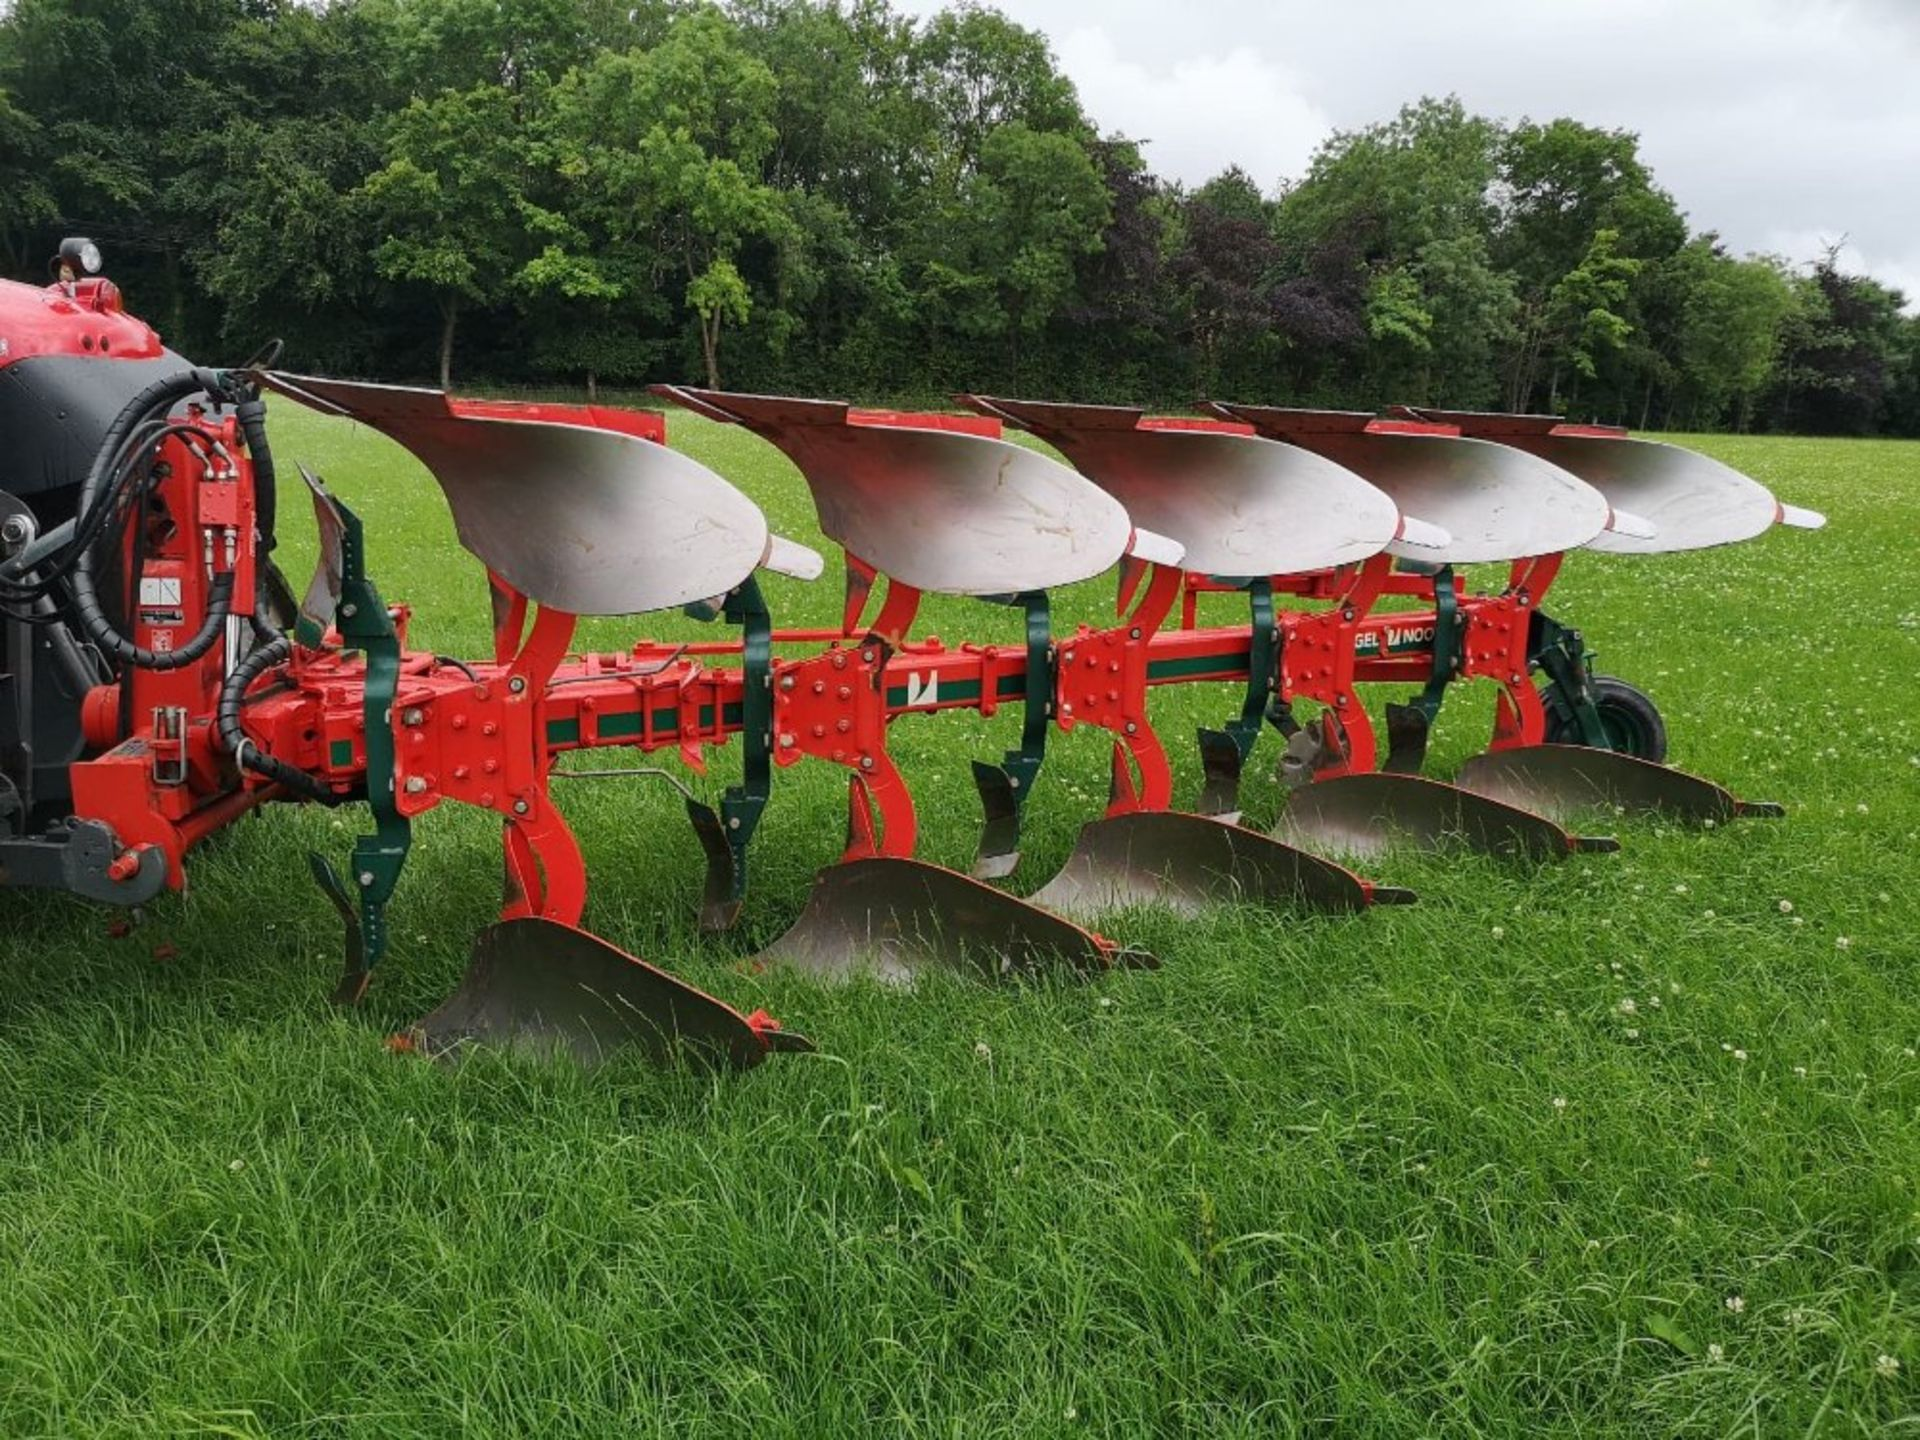 VOGEL NOOT XMS9SO VARIO PLOUGH AJ80 C/W MAIZE SKIMMERS, REAR DISC,HYD VARI WIDTH,HYD FRONT FURROW - Image 2 of 2